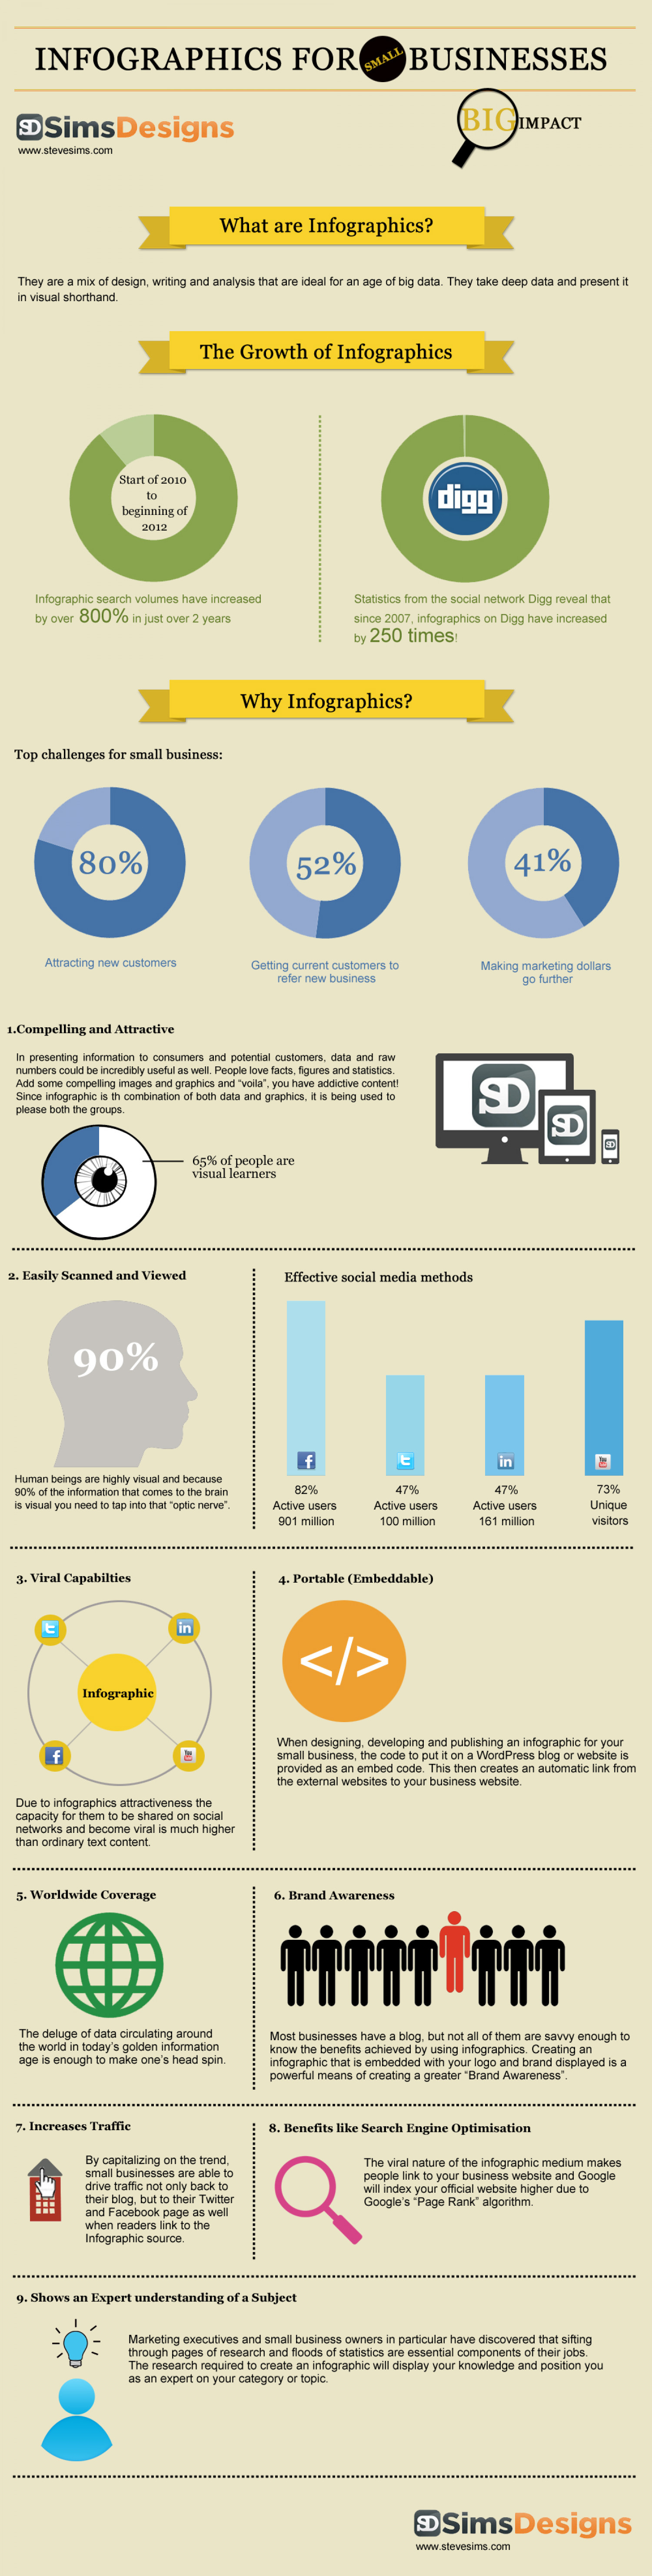 The importance of infographics for small businesses Infographic